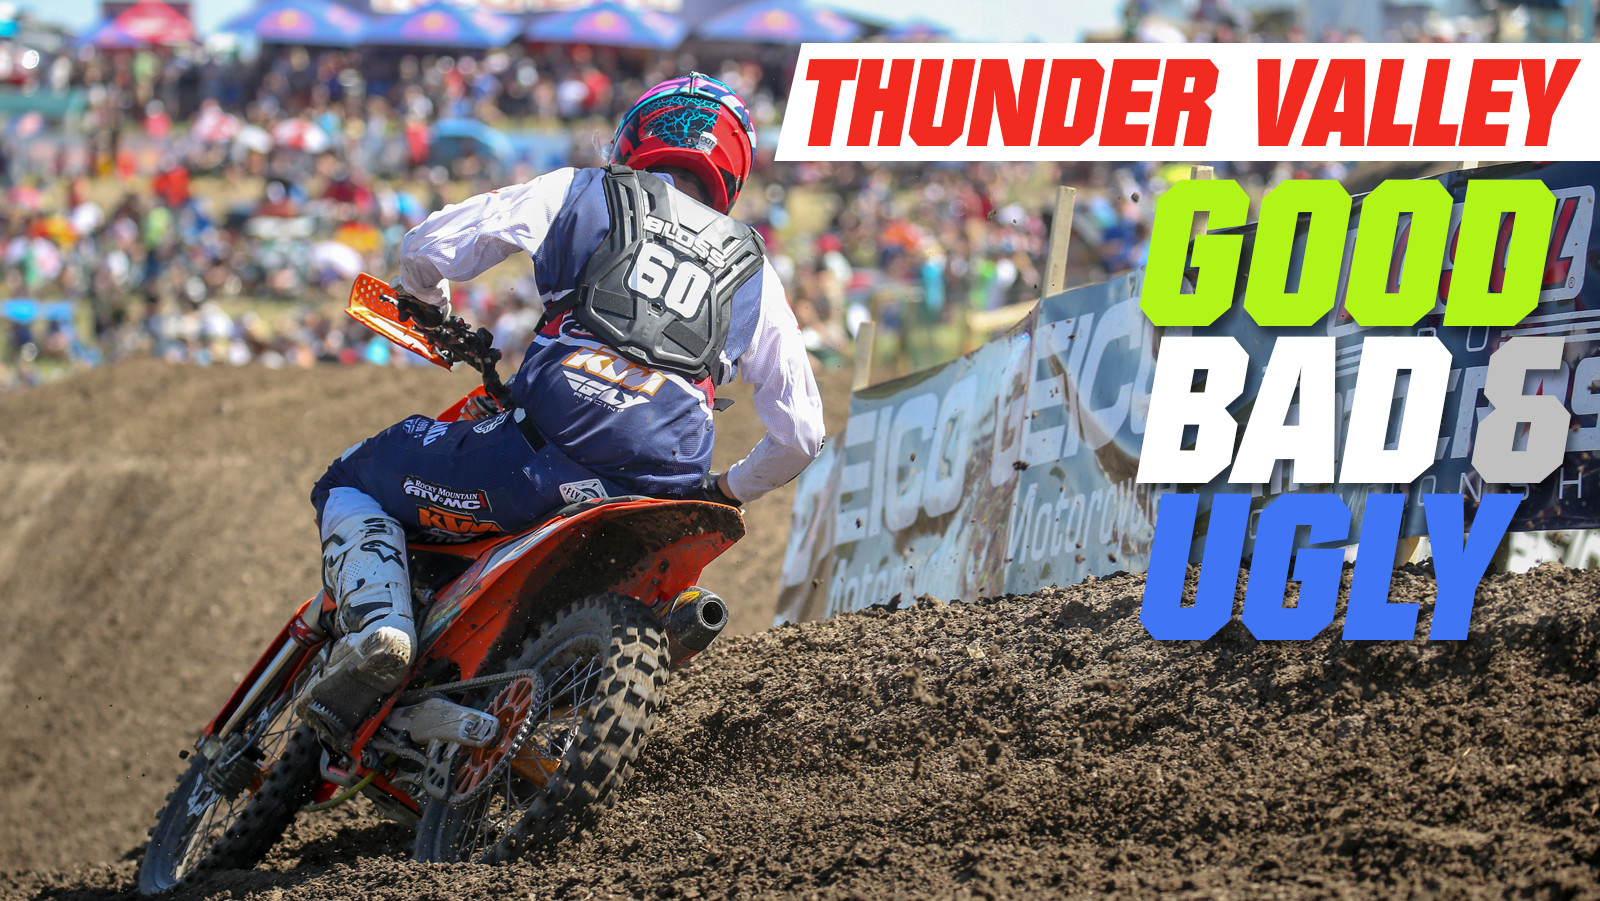 Thunder Valley - The Good, the Bad, and the Ugly